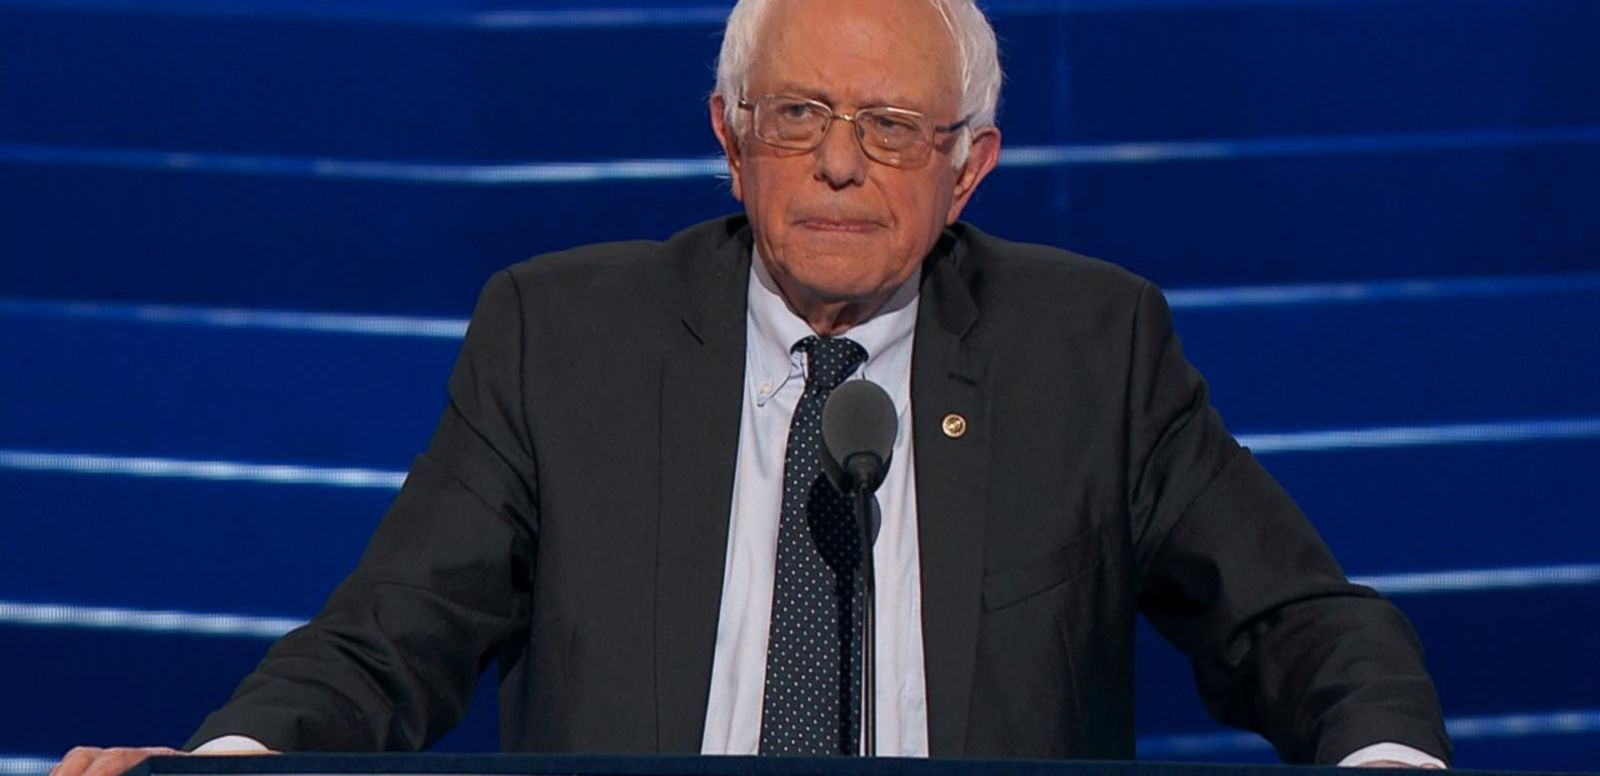 Sanders was the last speaker Monday night.